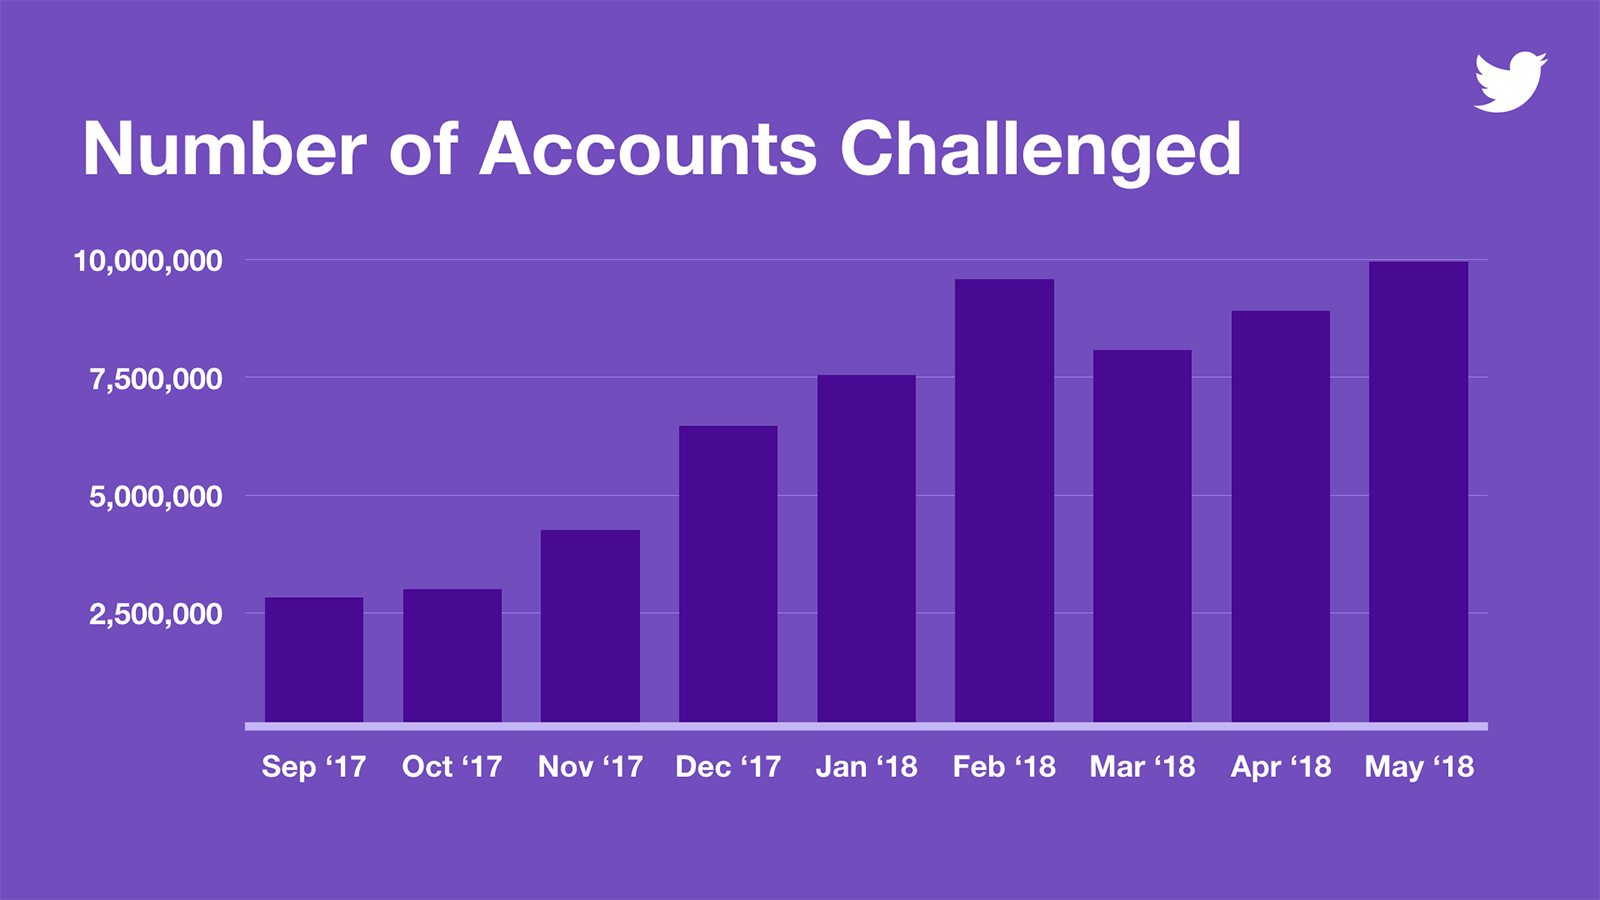 Graph of Twitter accounts removed due to violations over time